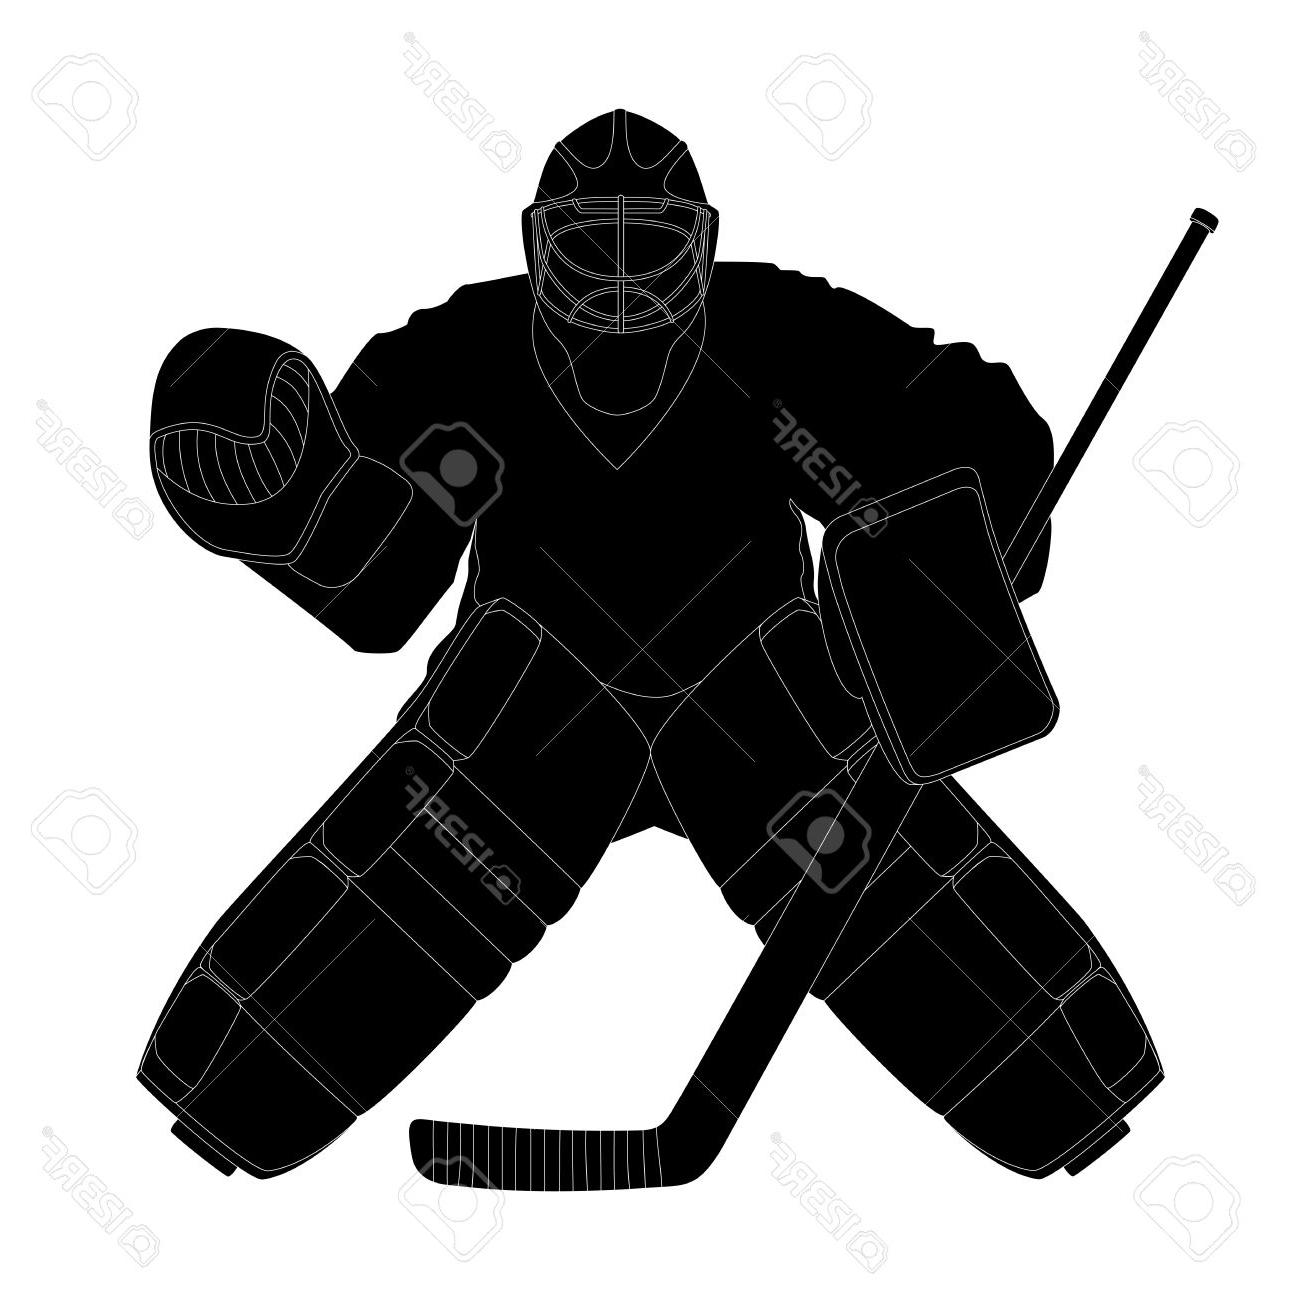 Ice Hockey Goalie Silhouette at GetDrawings.com | Free for personal use Ice Hockey ...